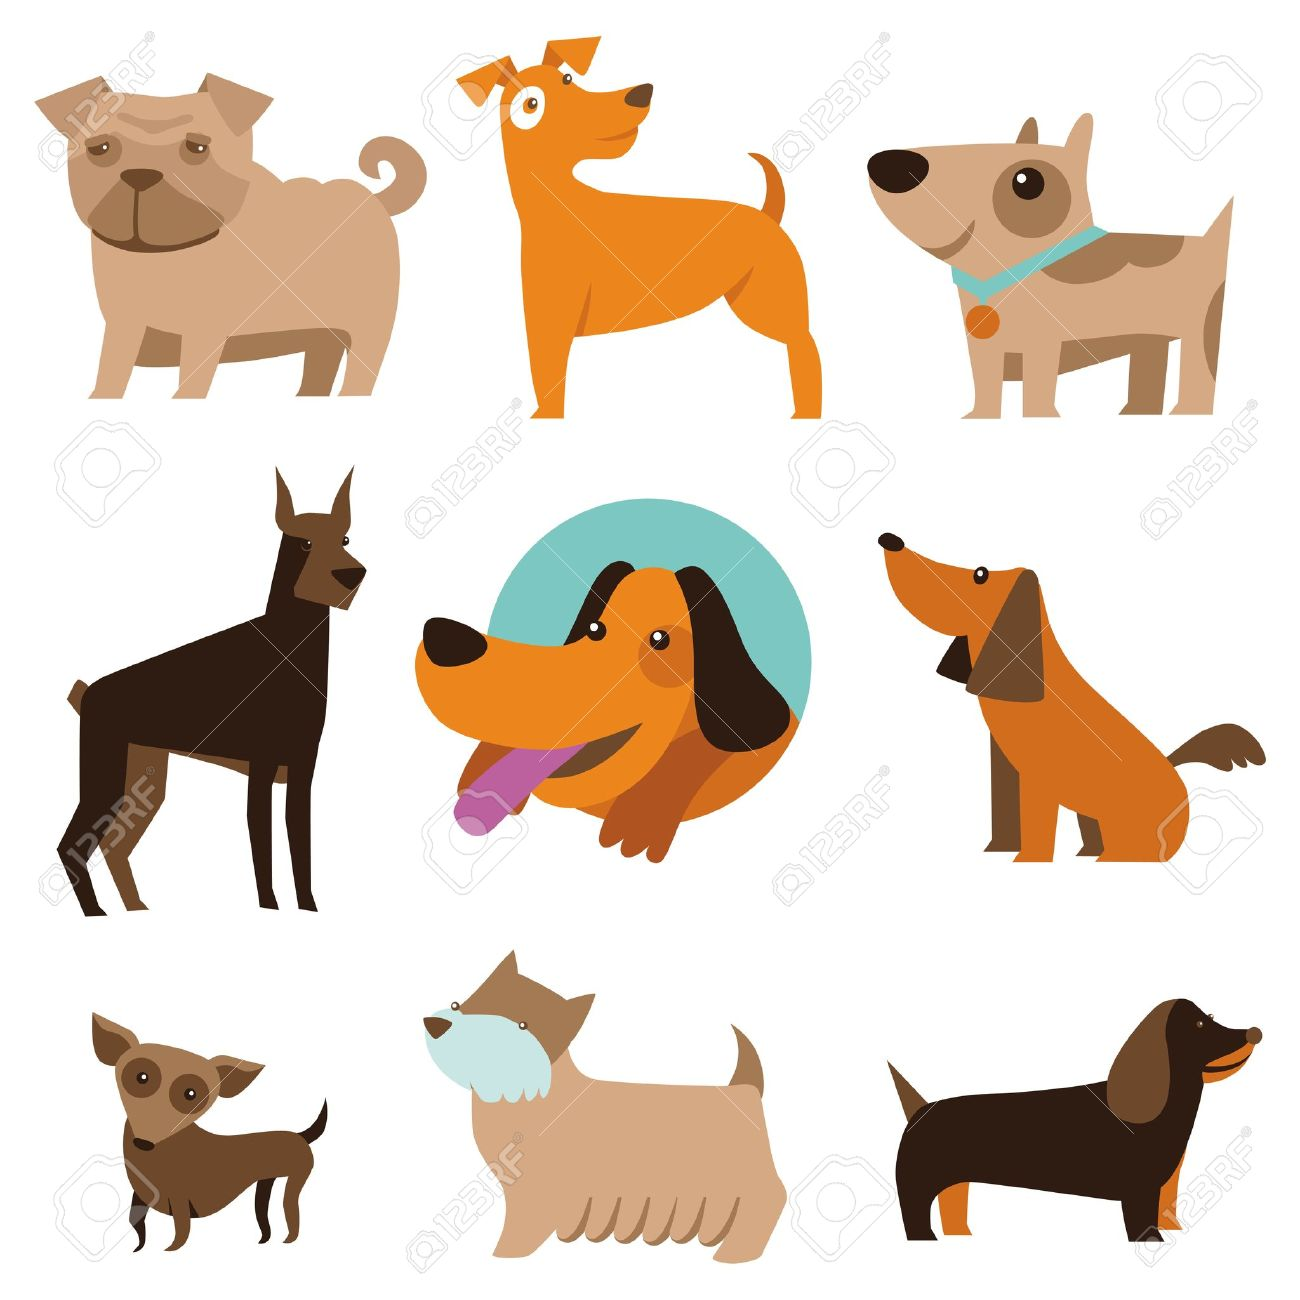 Vector Set Of Funny Cartoon Dogs Illustration In Flat Style